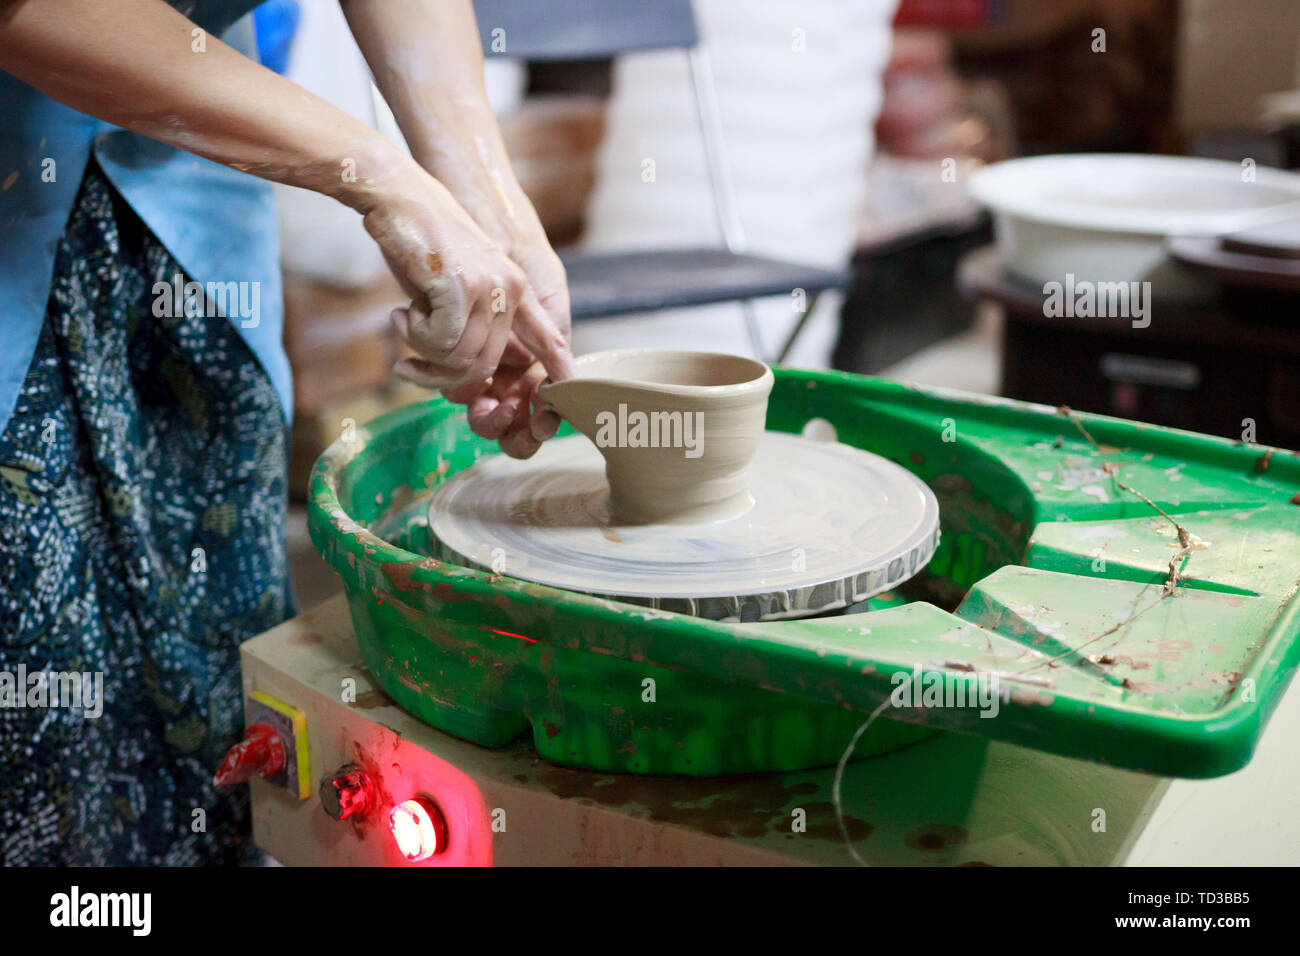 Young woman novice student in the first lesson in pottery tries to make a product from white clay on a potter's wheel. reportage. small sauce pan. mak Stock Photo